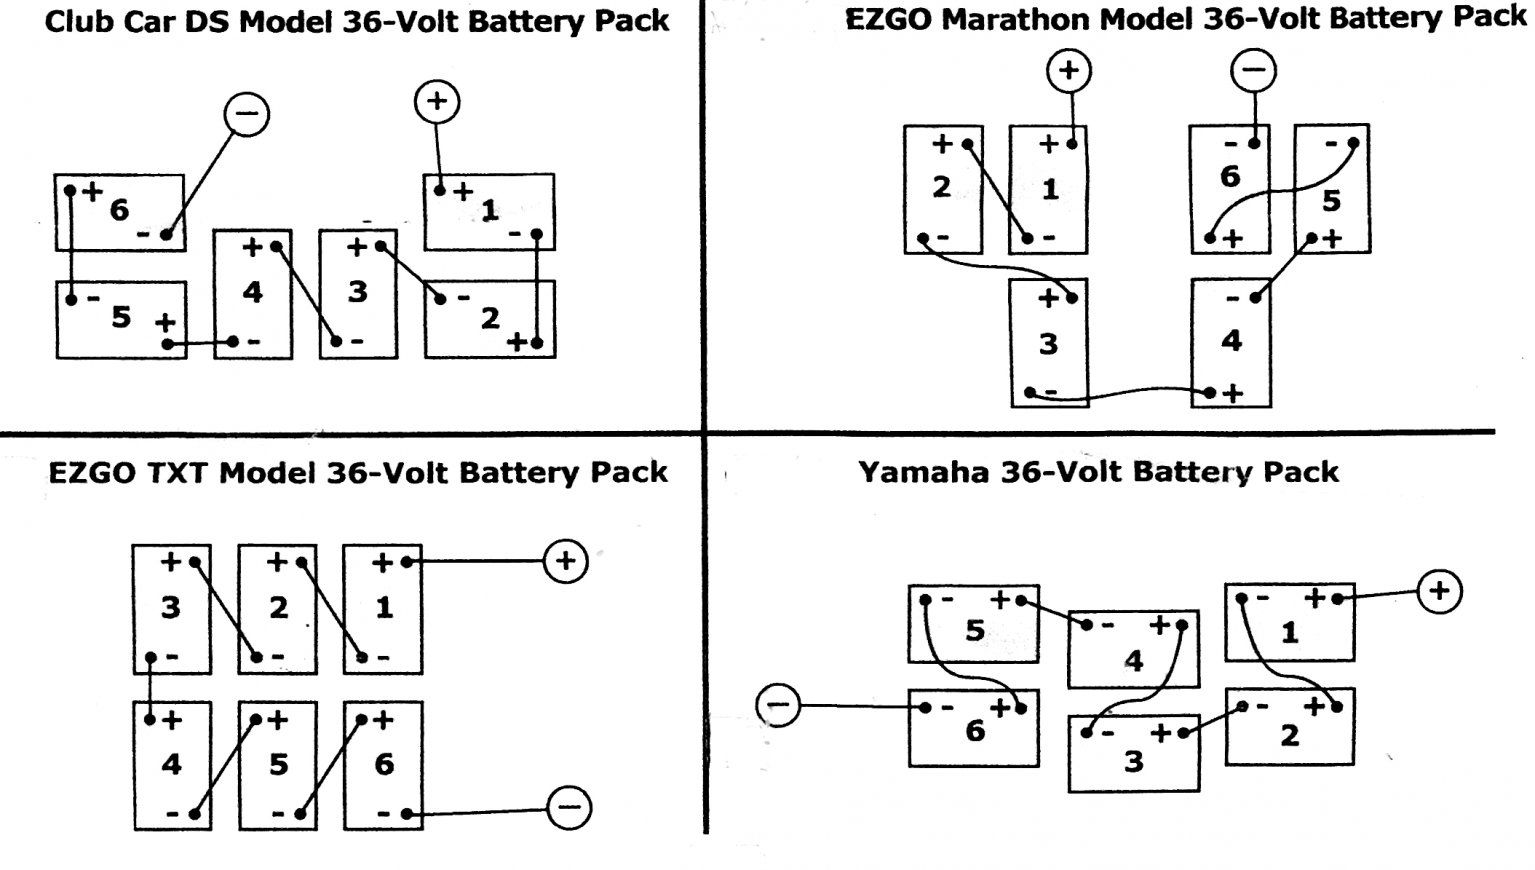 Western Golf Cart 36 Volt Wiring Diagram | Wiring Diagrams on 36 volt solenoid wiring diagram, golf cart tail light diagram, 36 volt lithium battery, 36 volt scooter battery, ez go 36 volt wiring diagram, 24 volt trolling motor battery diagram, 12 volt generator wiring diagram, 6 volt charging system diagram, 36 volt deep cycle marine battery, 36 volt ezgo wiring, yamaha 48 volt golf cart wiring diagram, 48 volt club car wiring diagram, ez go txt textron diagram, 36 volt melex wiring-diagram, ezgo 36 volt diagram, 36 volt club car batteries, ez go txt battery diagram, minn kota trolling motor diagram, 1994 club car wiring diagram, motorguide 36 volt wiring diagram,